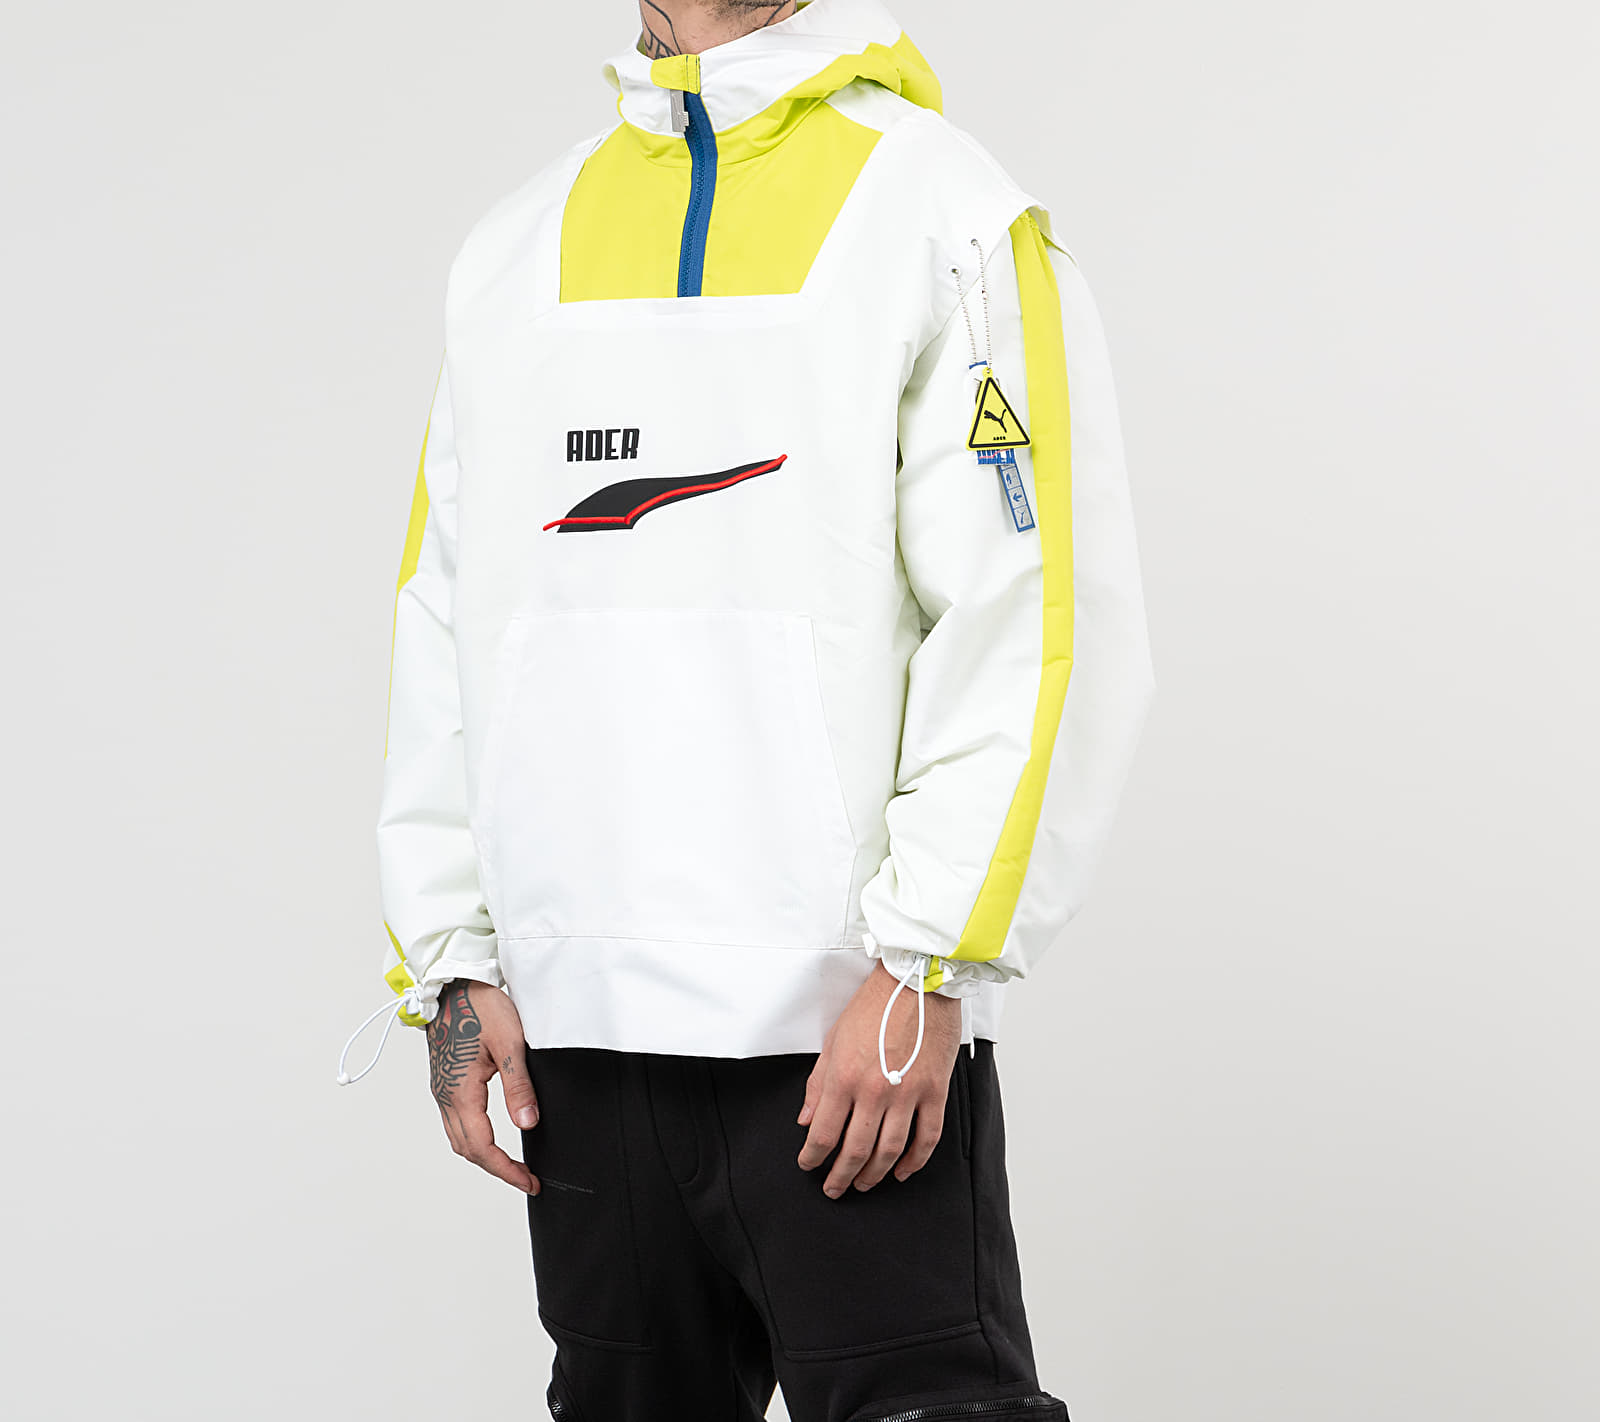 Puma x Ader Windbreaker Jacket Puma White